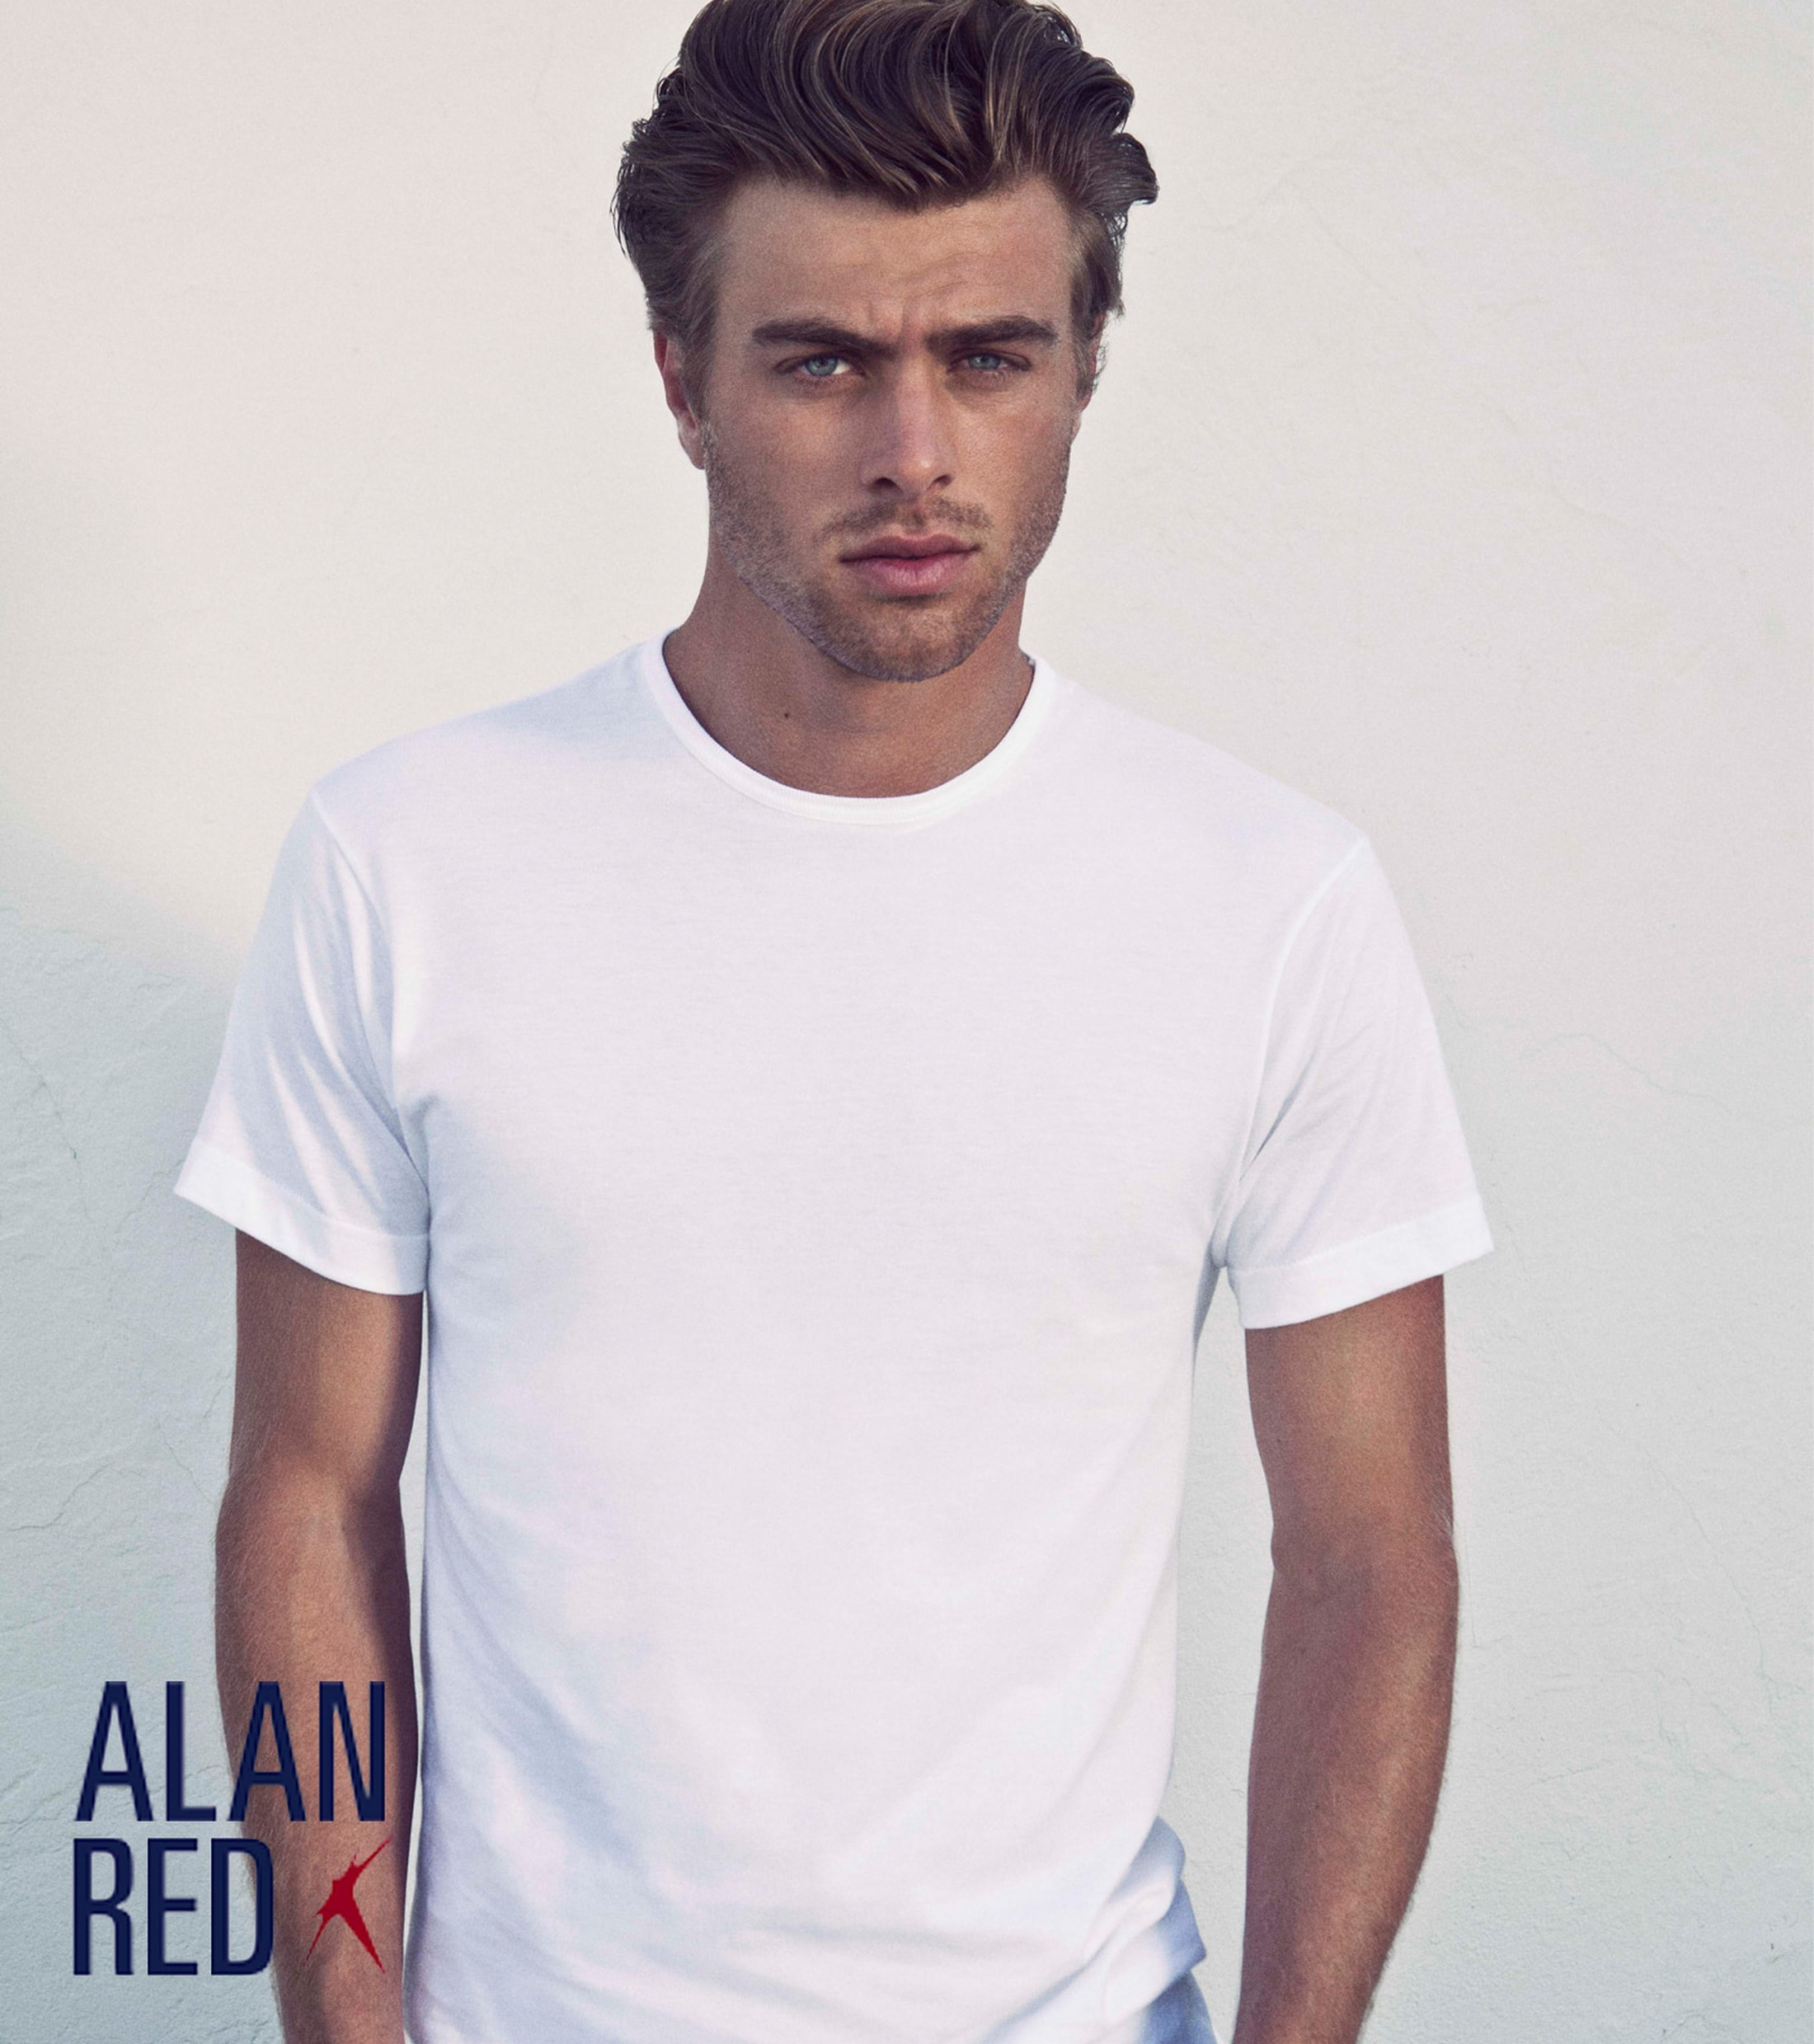 Alan Red Aanbieding Derby O-Hals T-shirts Wit (6Pack) foto 3